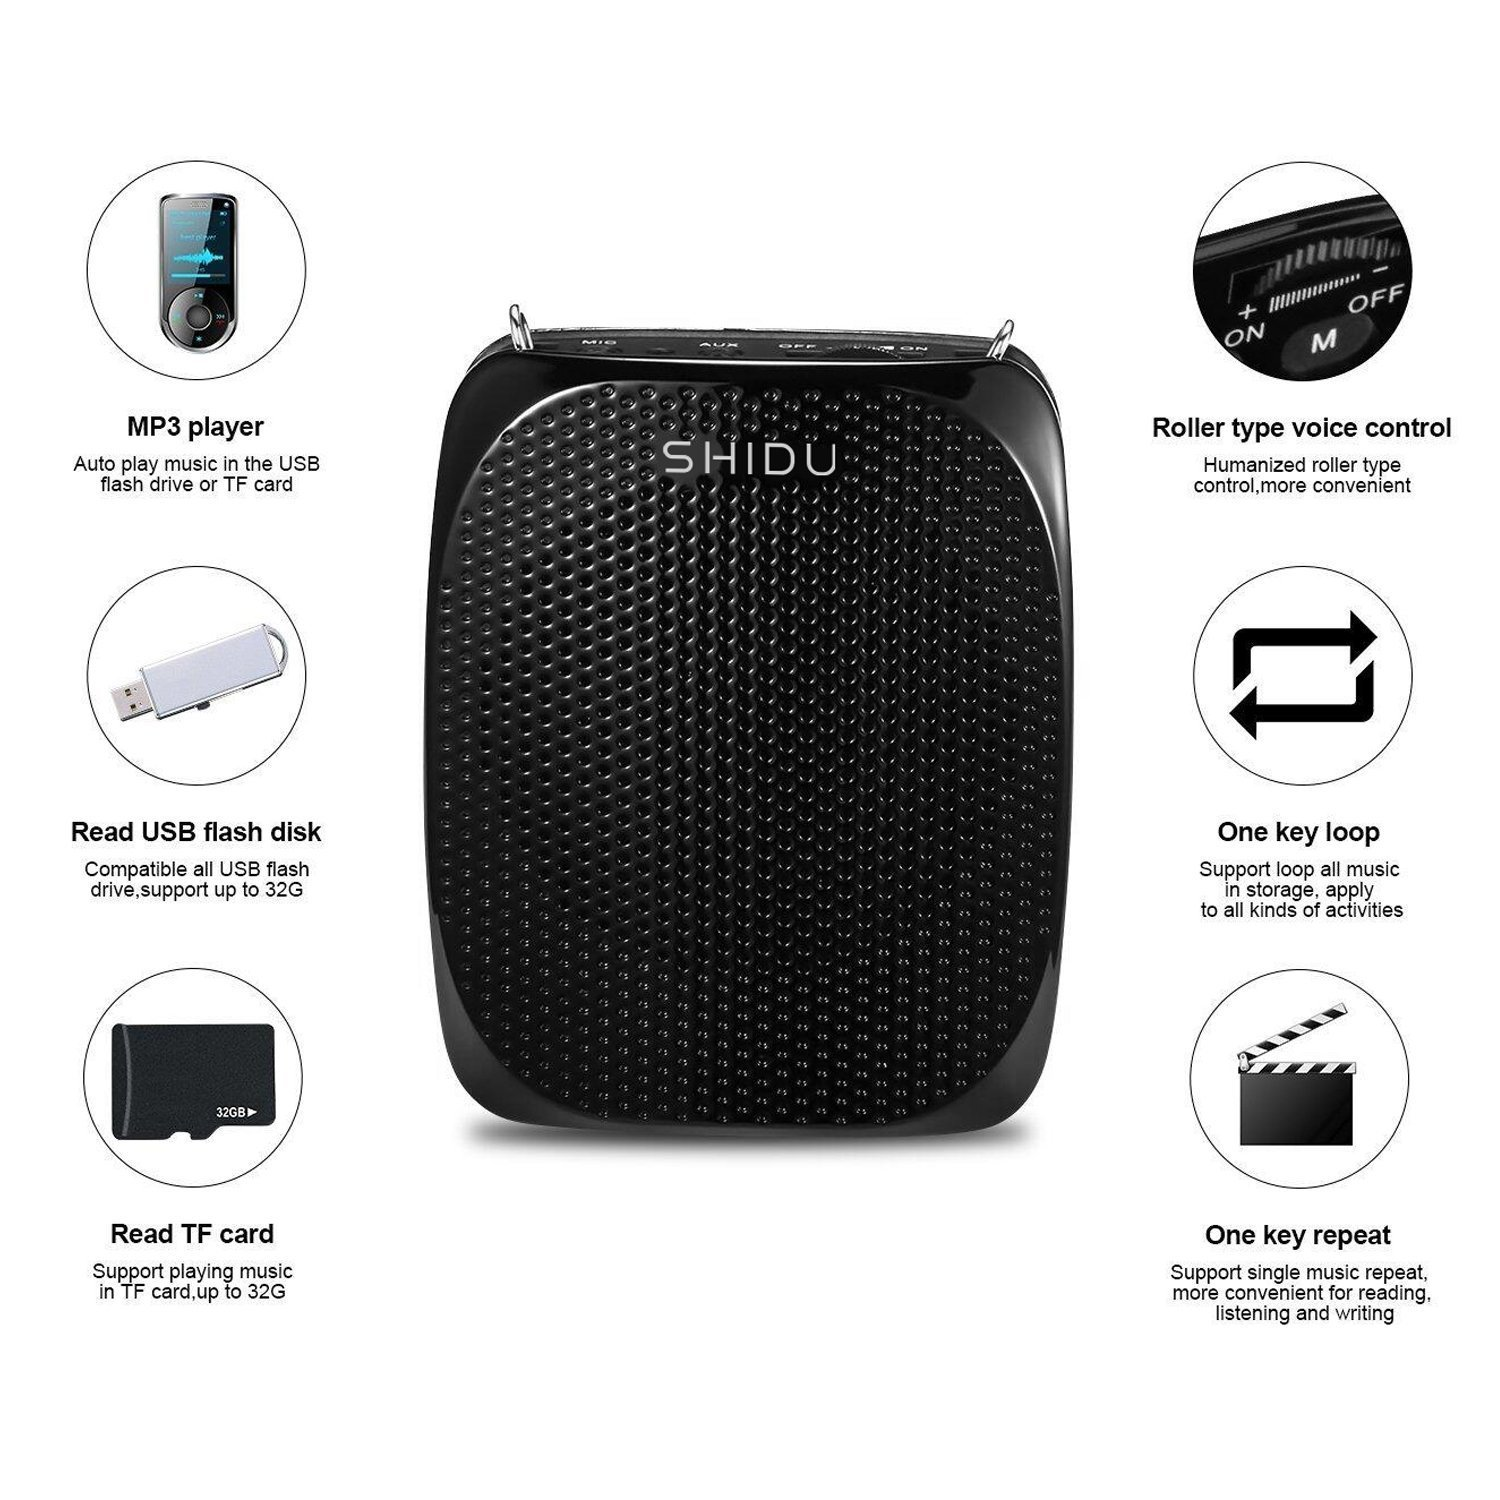 Portable Voice Amplifier Pa system loud speaker with 1800mAh Rechargable Lithium Battery , Wired headset Microphone Waist Support Suitable for Tour Guides, Teachers, Coaches, Presentations, Costumes by SHIDU (Image #2)